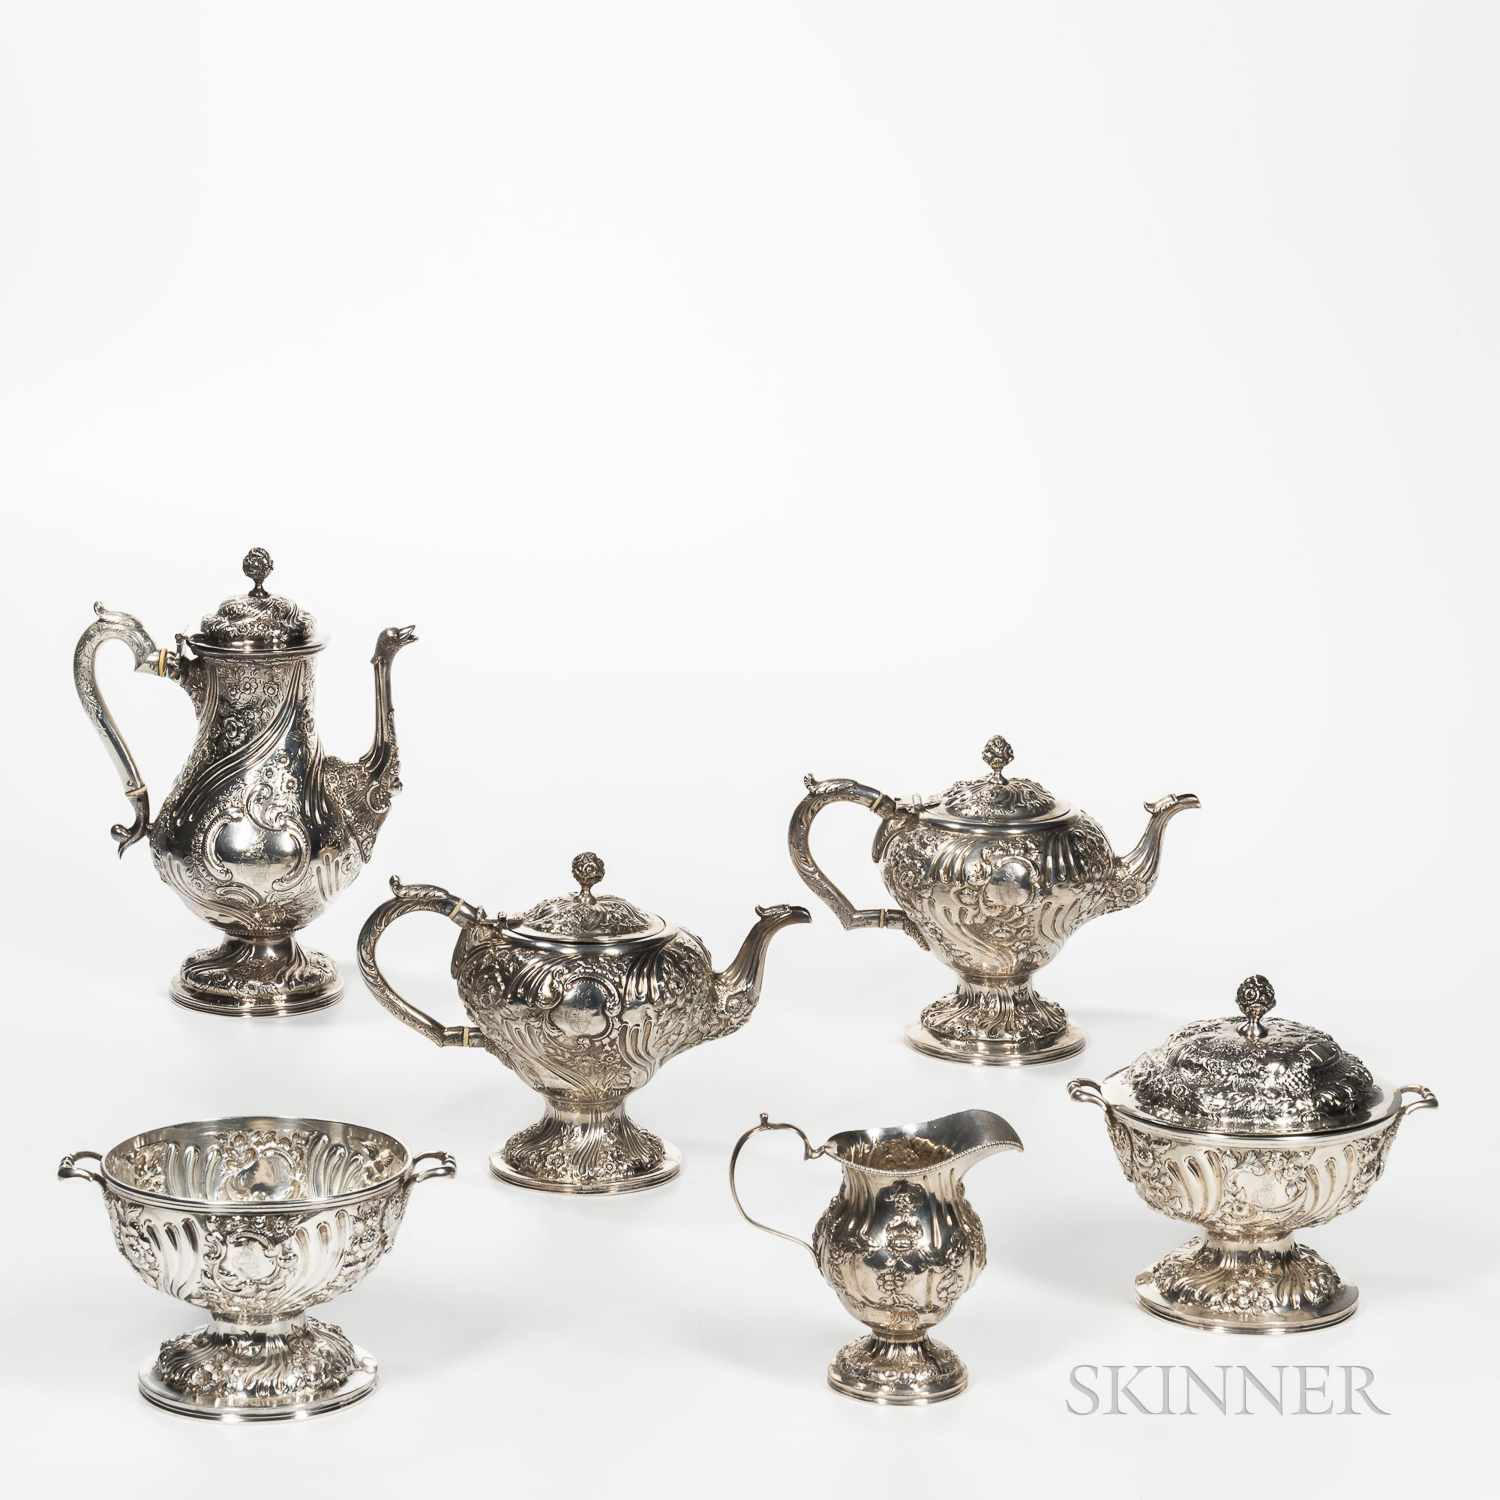 Samuel Kirk .917 Silver Tea and Coffee Service